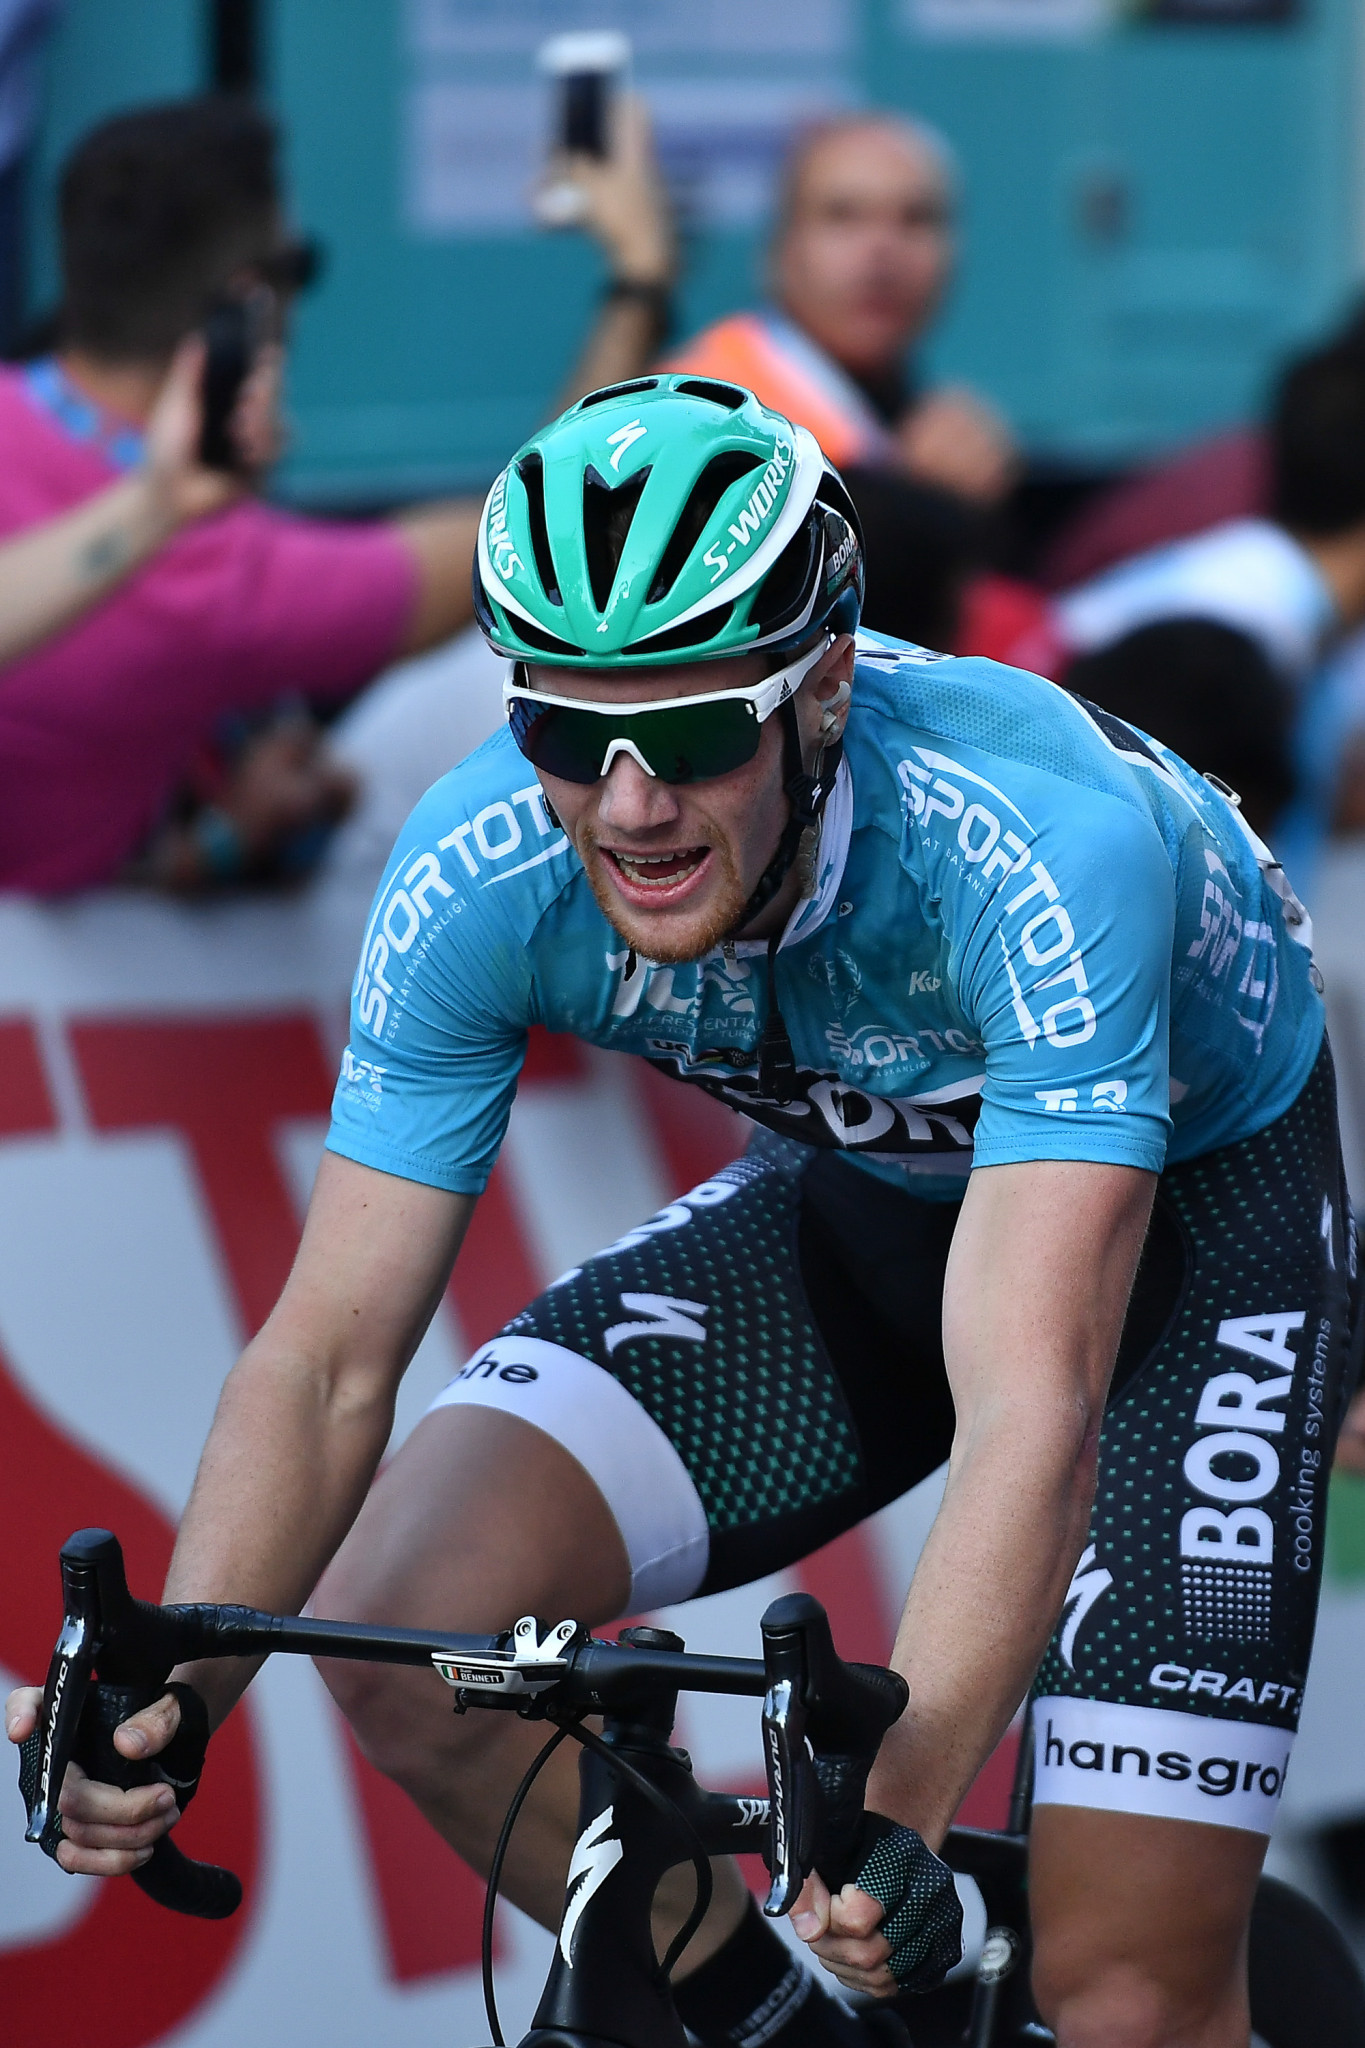 Ireland's Sam Bennett, who was leading the standings before today's stage, finished way down in 129th ©Getty Images